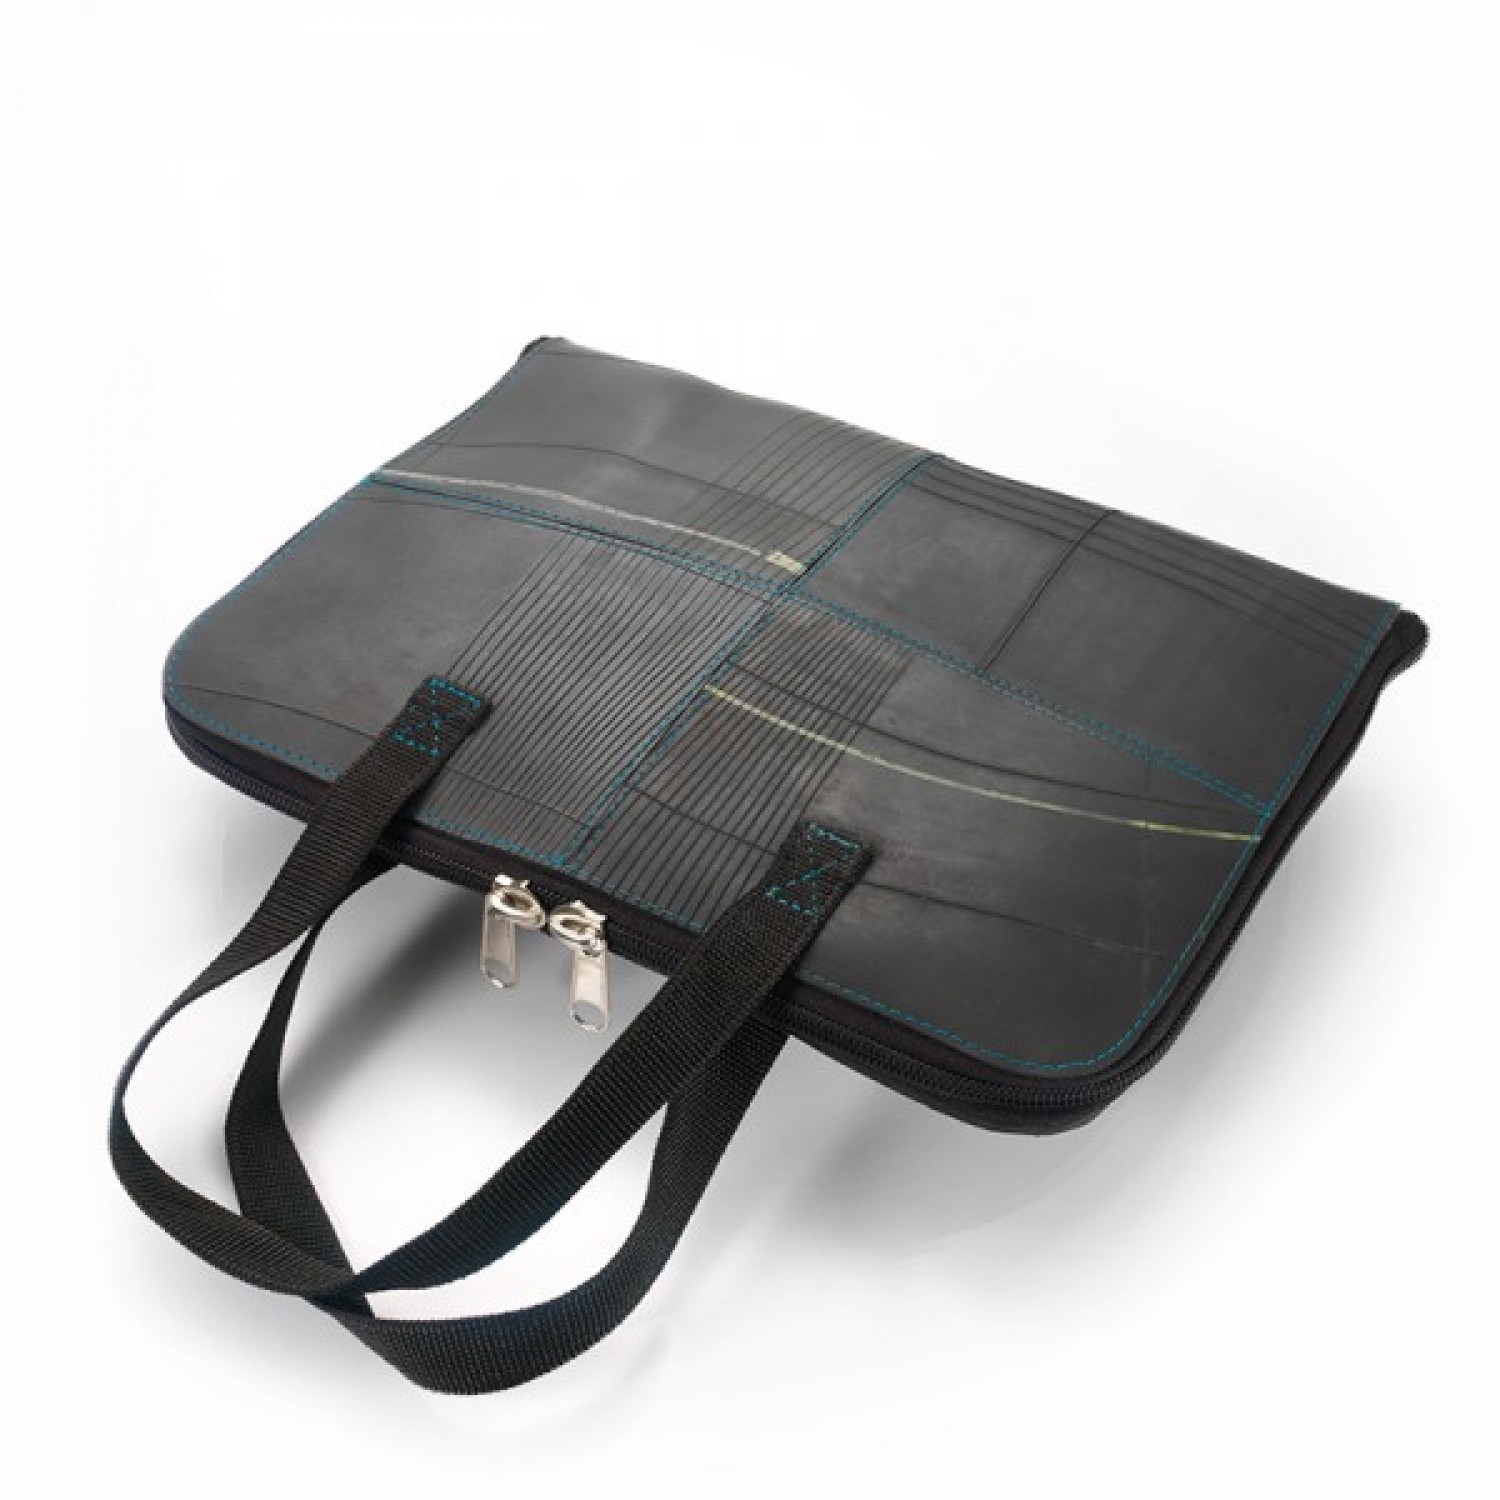 Armi M | Laptop bag | Notebook Case